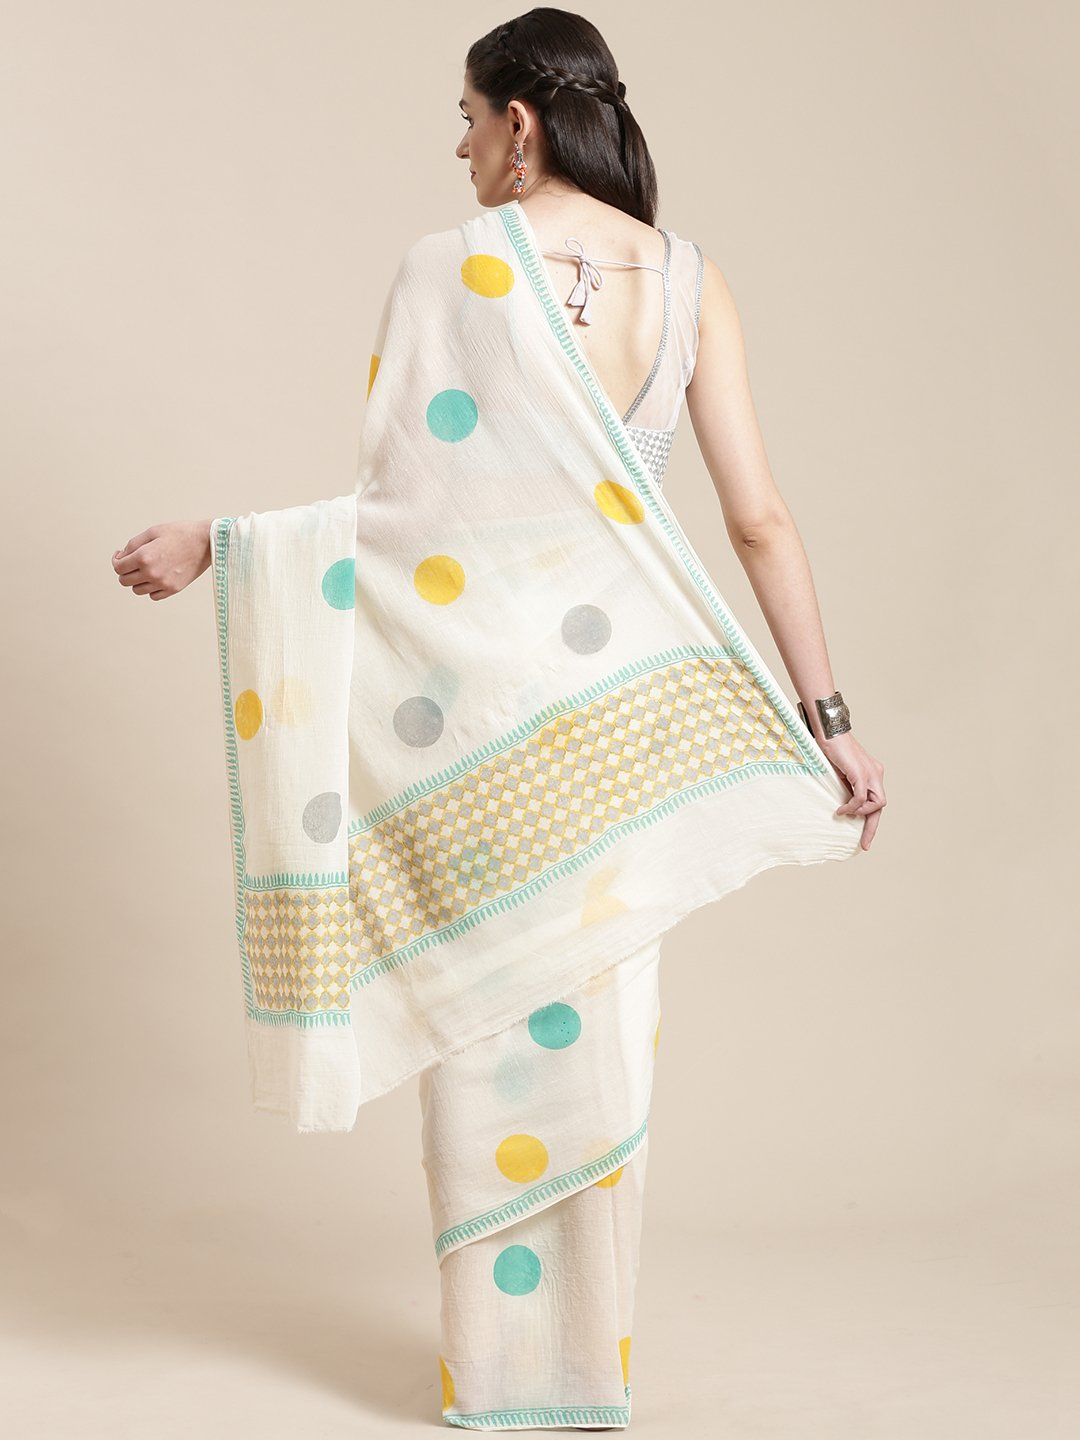 White & Green Handblock Print Saree-Saree-Kalakari India-HUPASA0008-Cotton, Geographical Indication, Hand Blocks, Hand Crafted, Heritage Prints, Sarees, Sustainable Fabrics-[Linen,Ethnic,wear,Fashionista,Handloom,Handicraft,Indigo,blockprint,block,print,Cotton,Chanderi,Blue, latest,classy,party,bollywood,trendy,summer,style,traditional,formal,elegant,unique,style,hand,block,print, dabu,booti,gift,present,glamorous,affordable,collectible,Sari,Saree,printed, holi, Diwali, birthday, anniversary, su